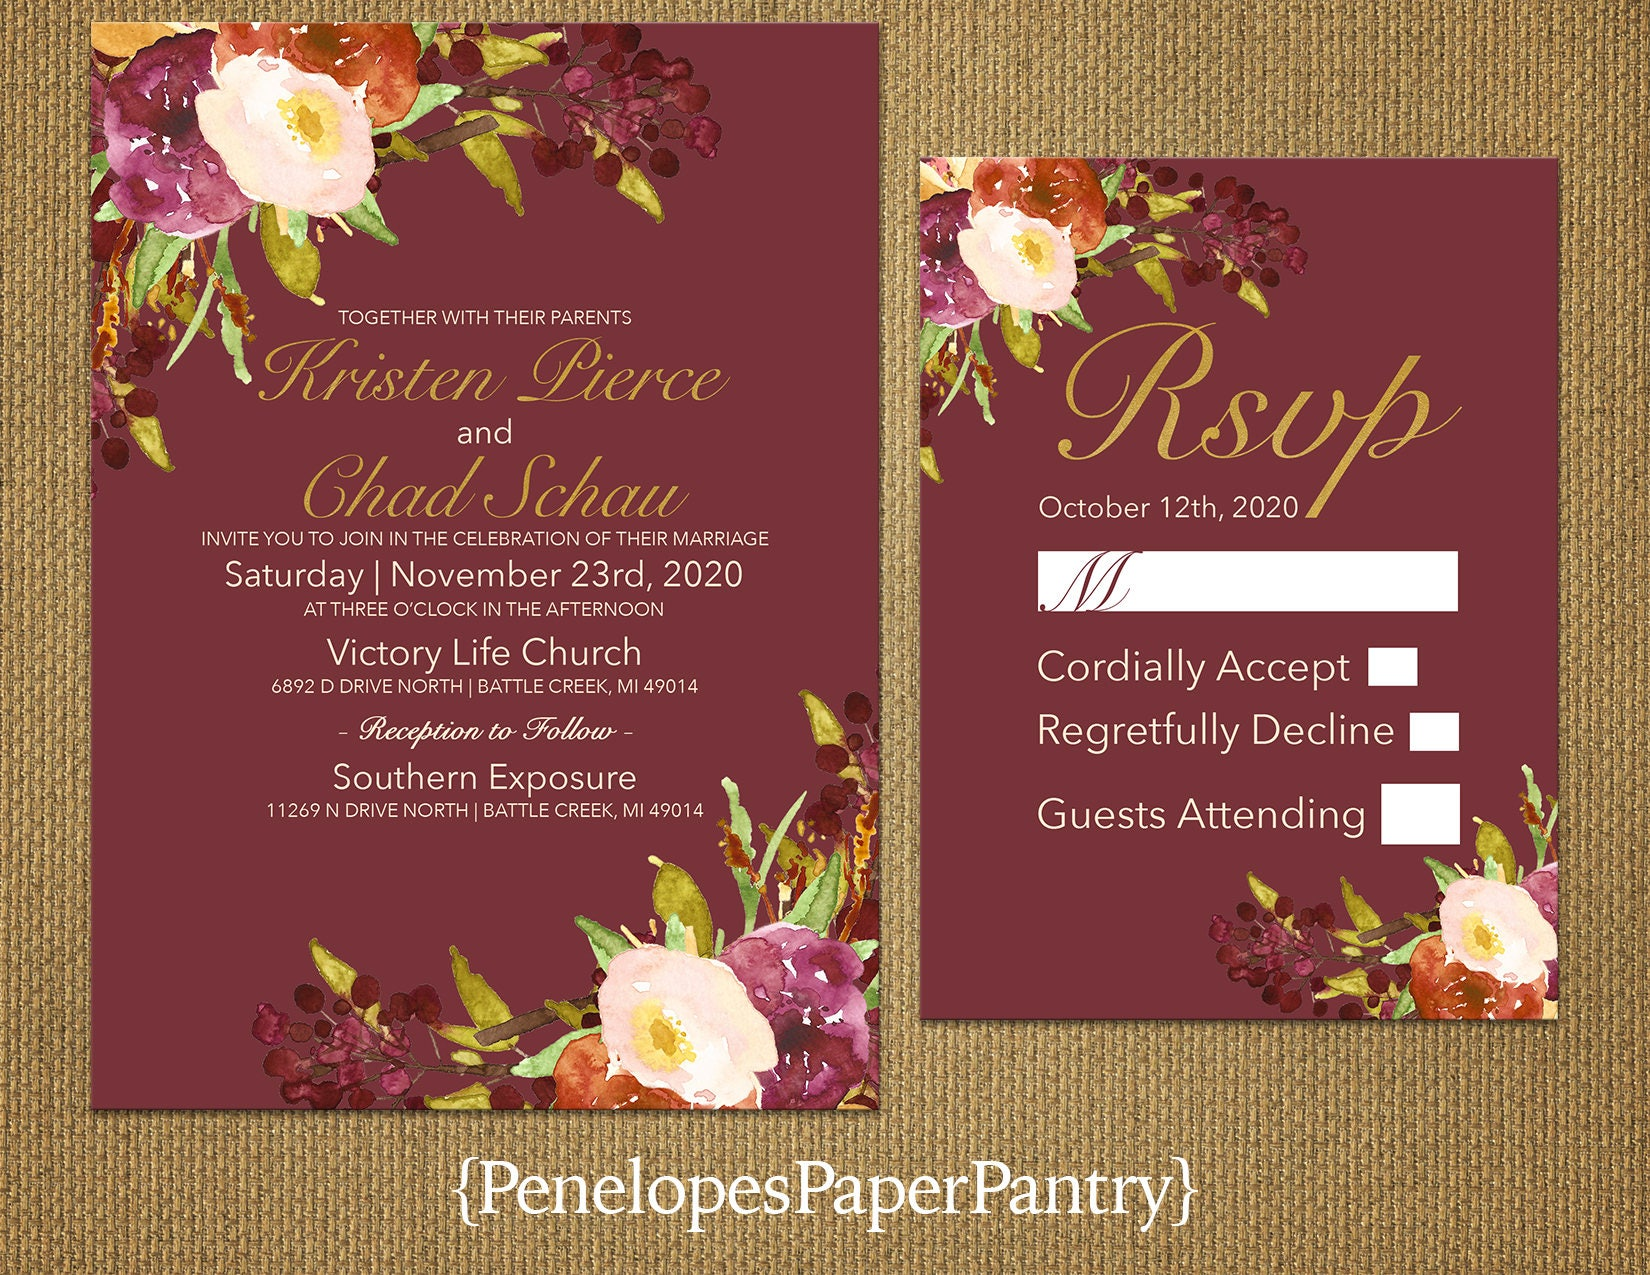 Elegant Marsala Fall Wedding InvitationPlumBurgundyBurnt | Etsy